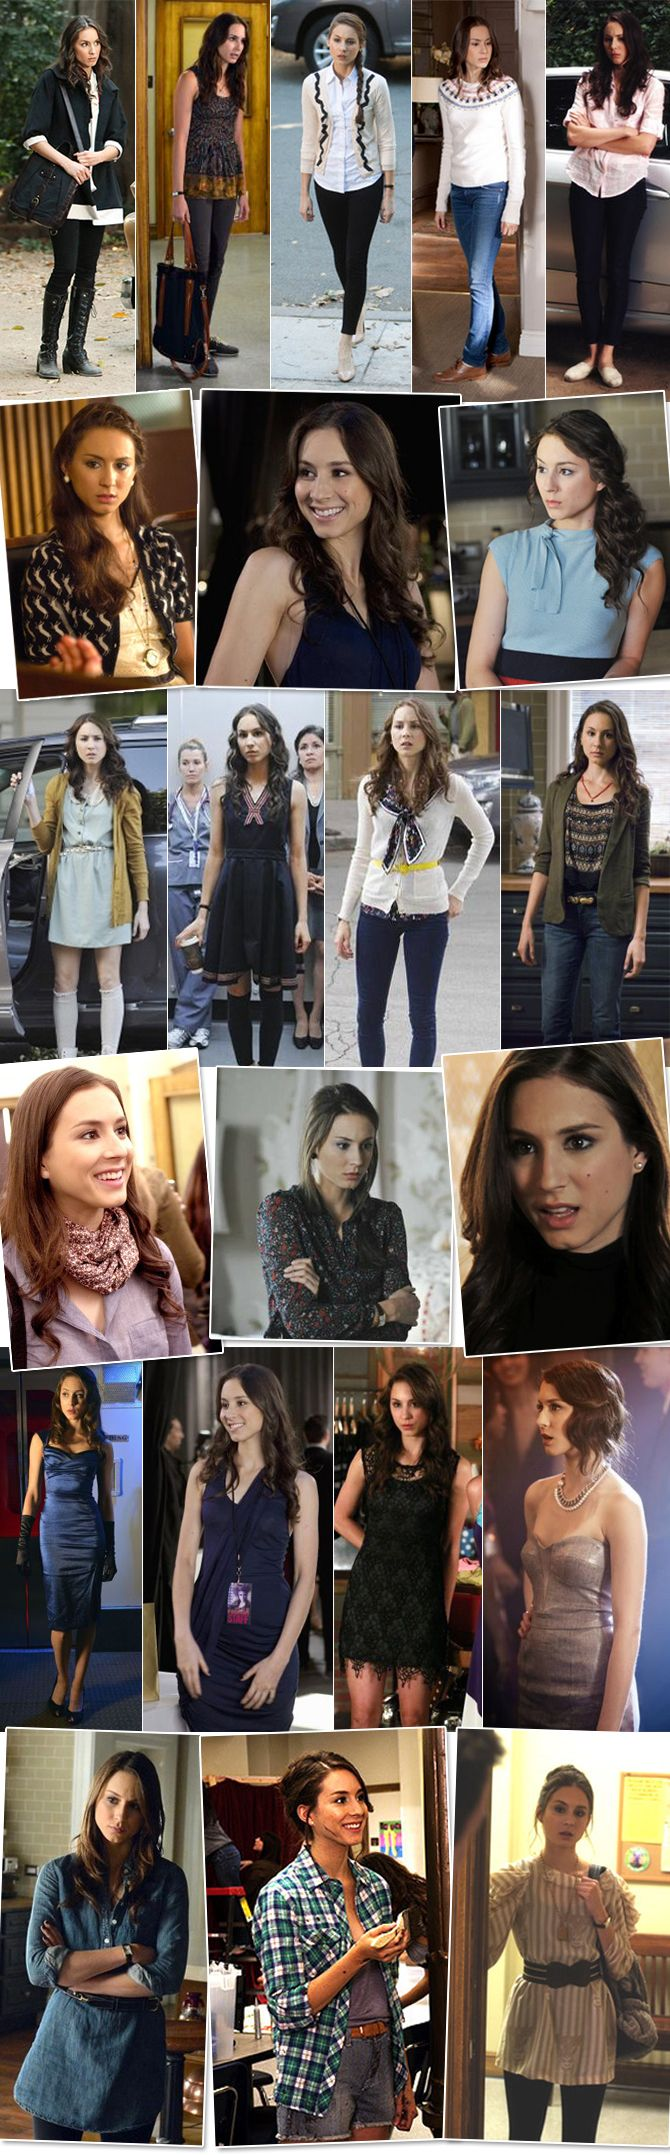 spencer hastings copy